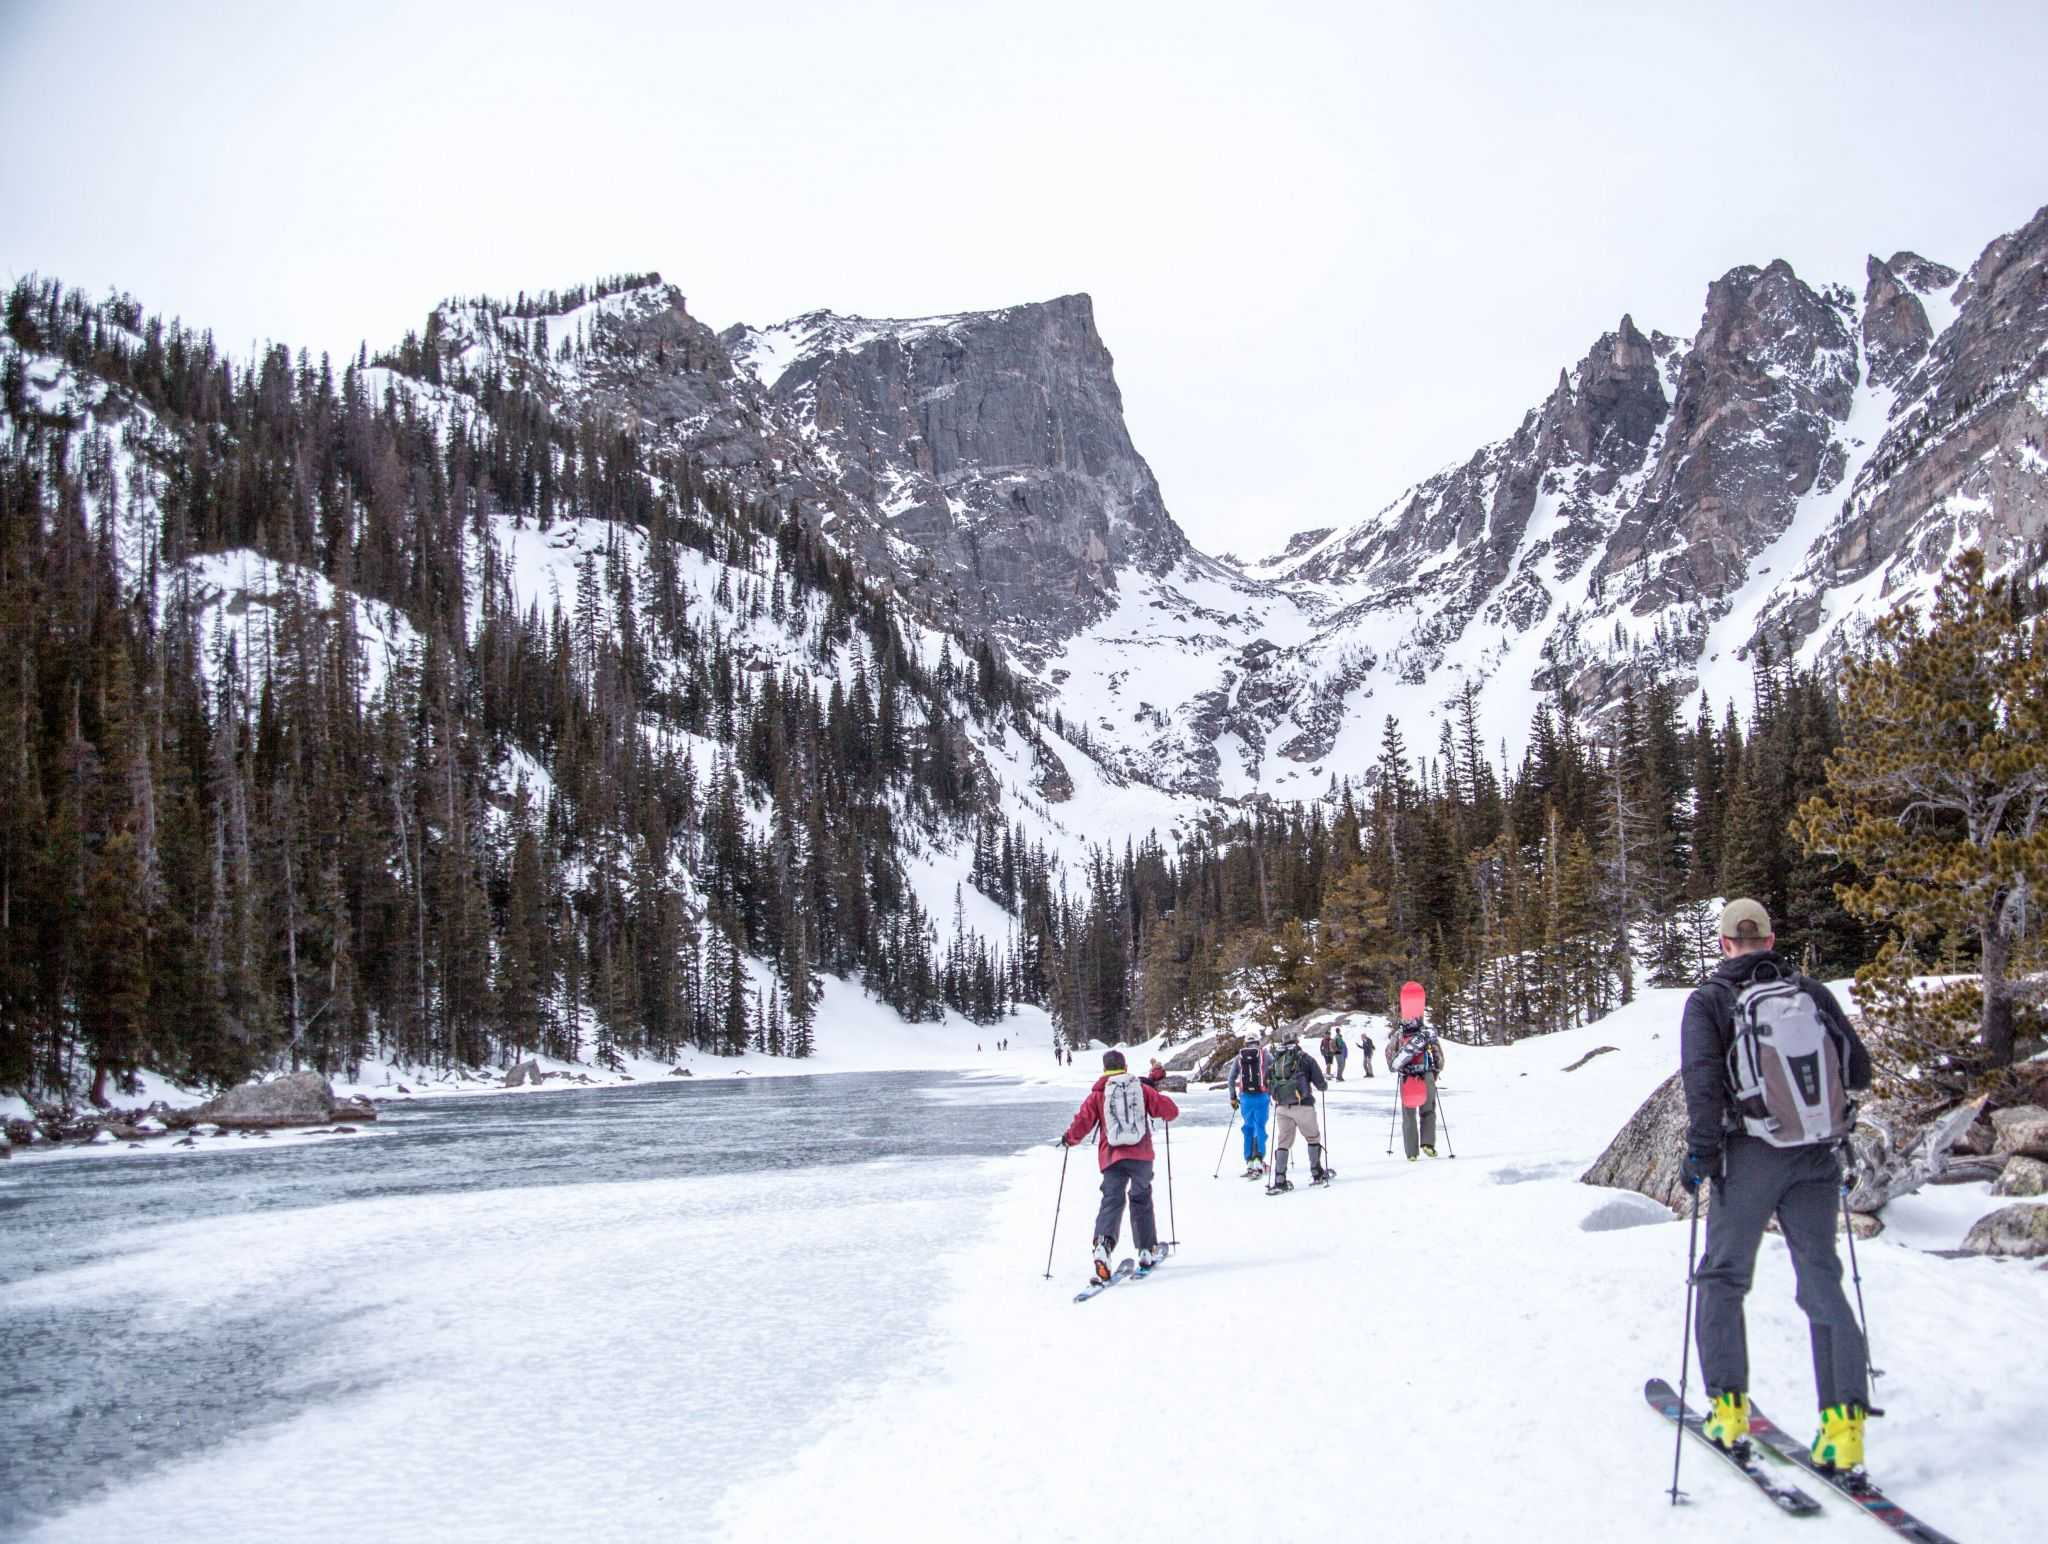 Eli, leading the way across a frozen lake. Photo: Nevin Fowler